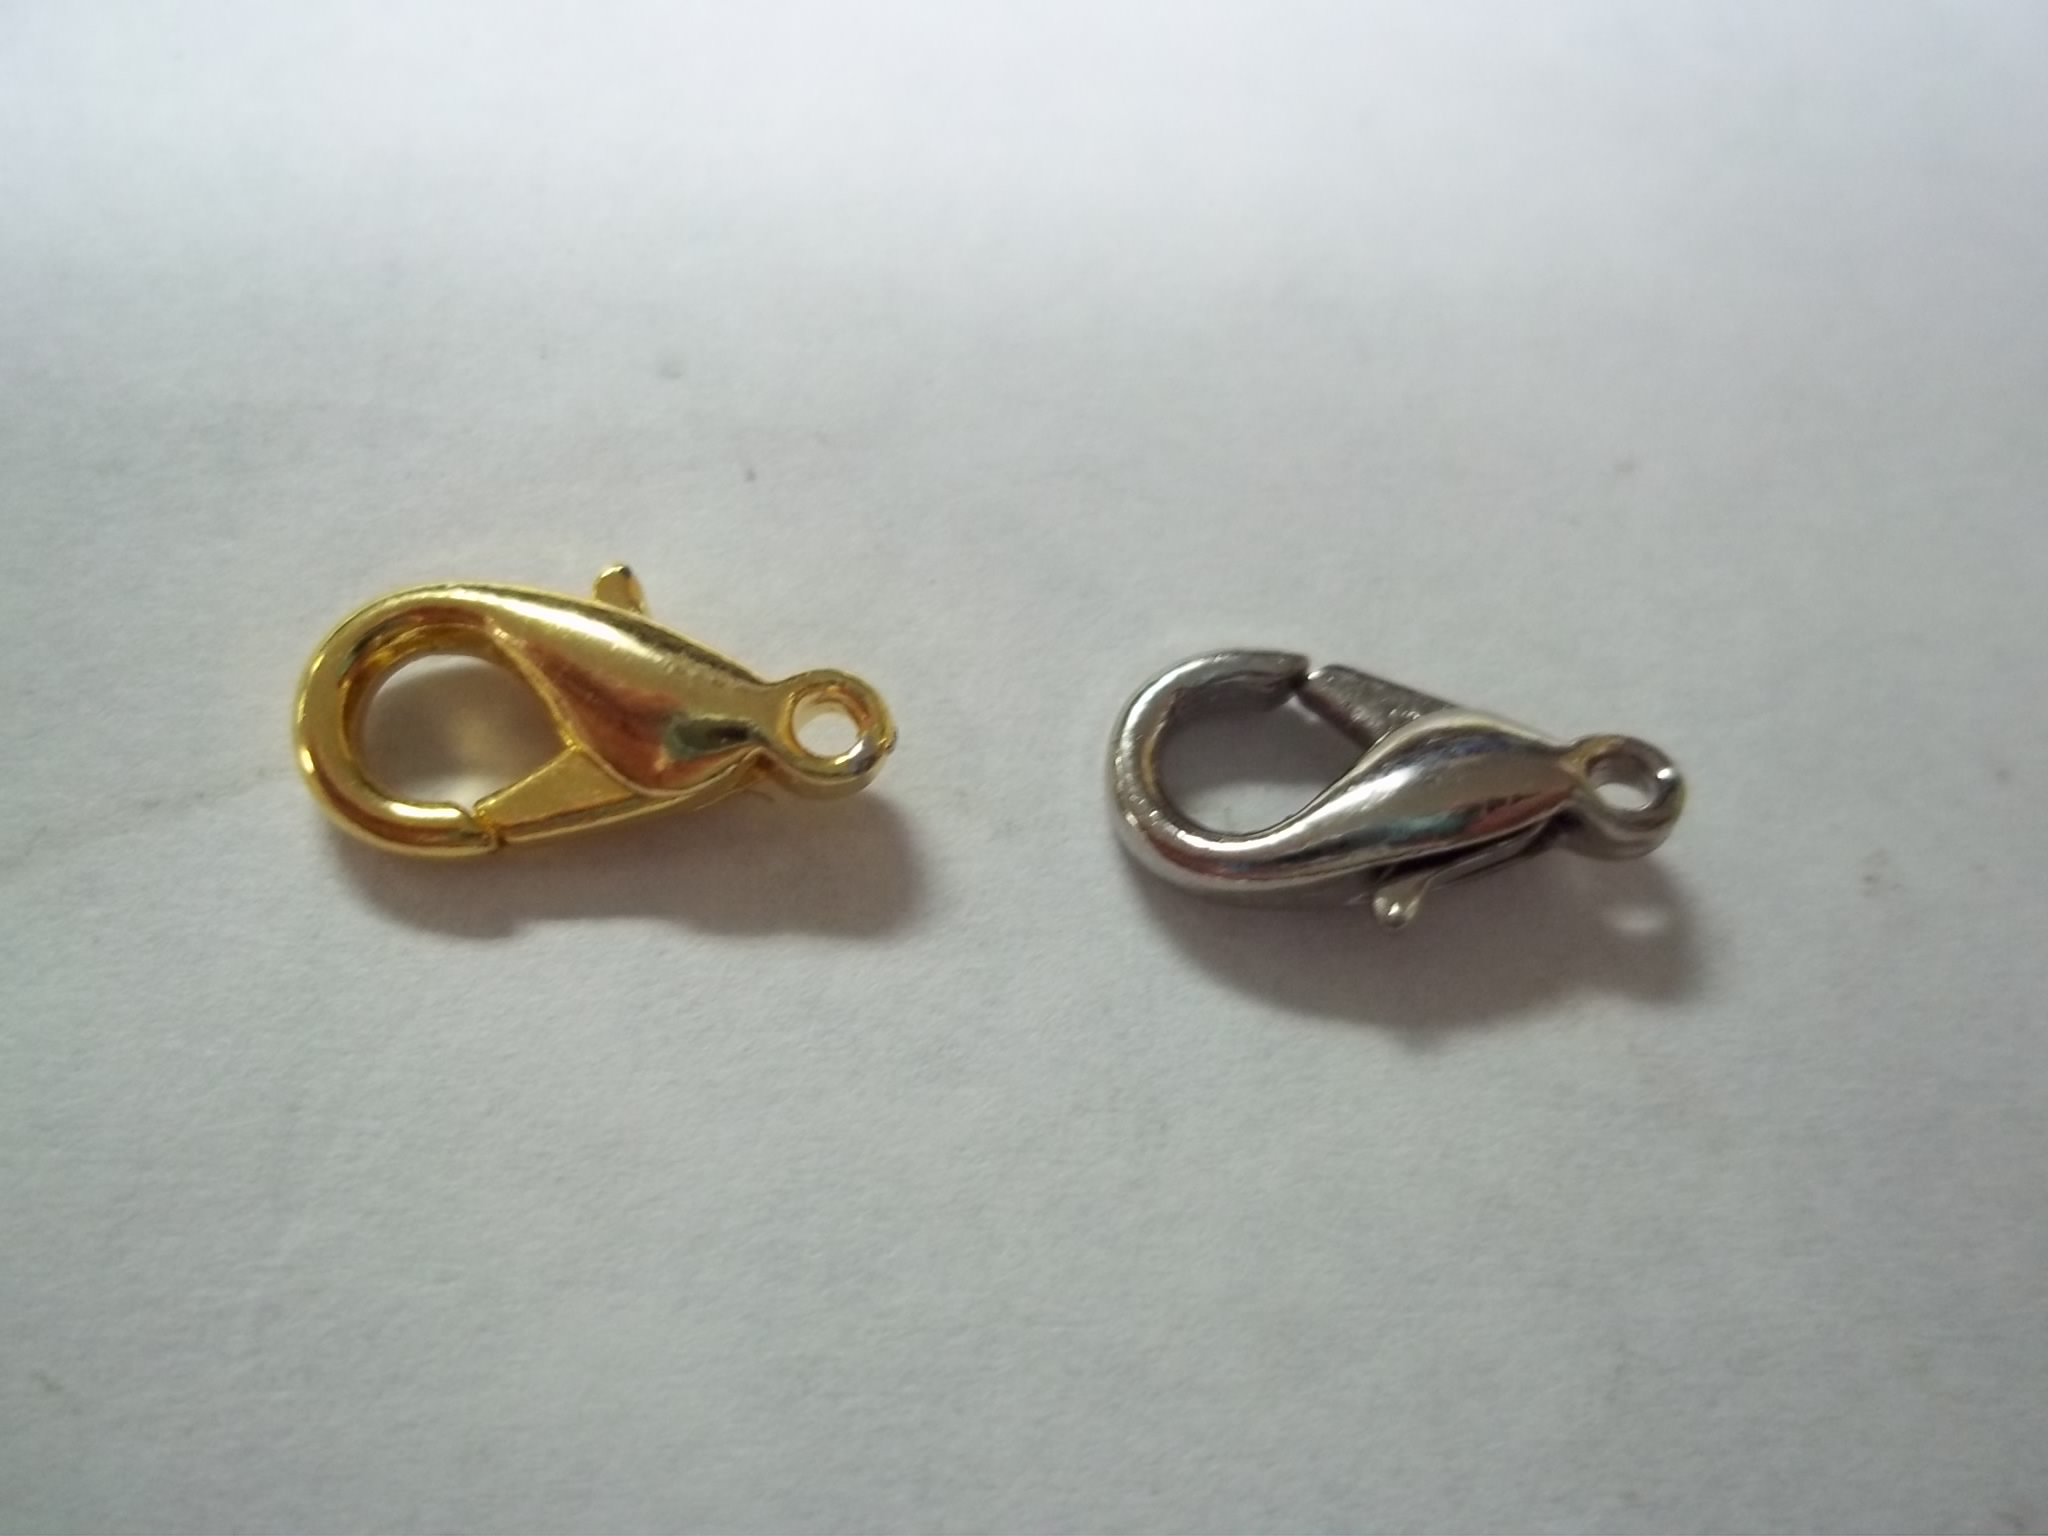 LBC013N Nickle Plated Lobster Claw Clasp